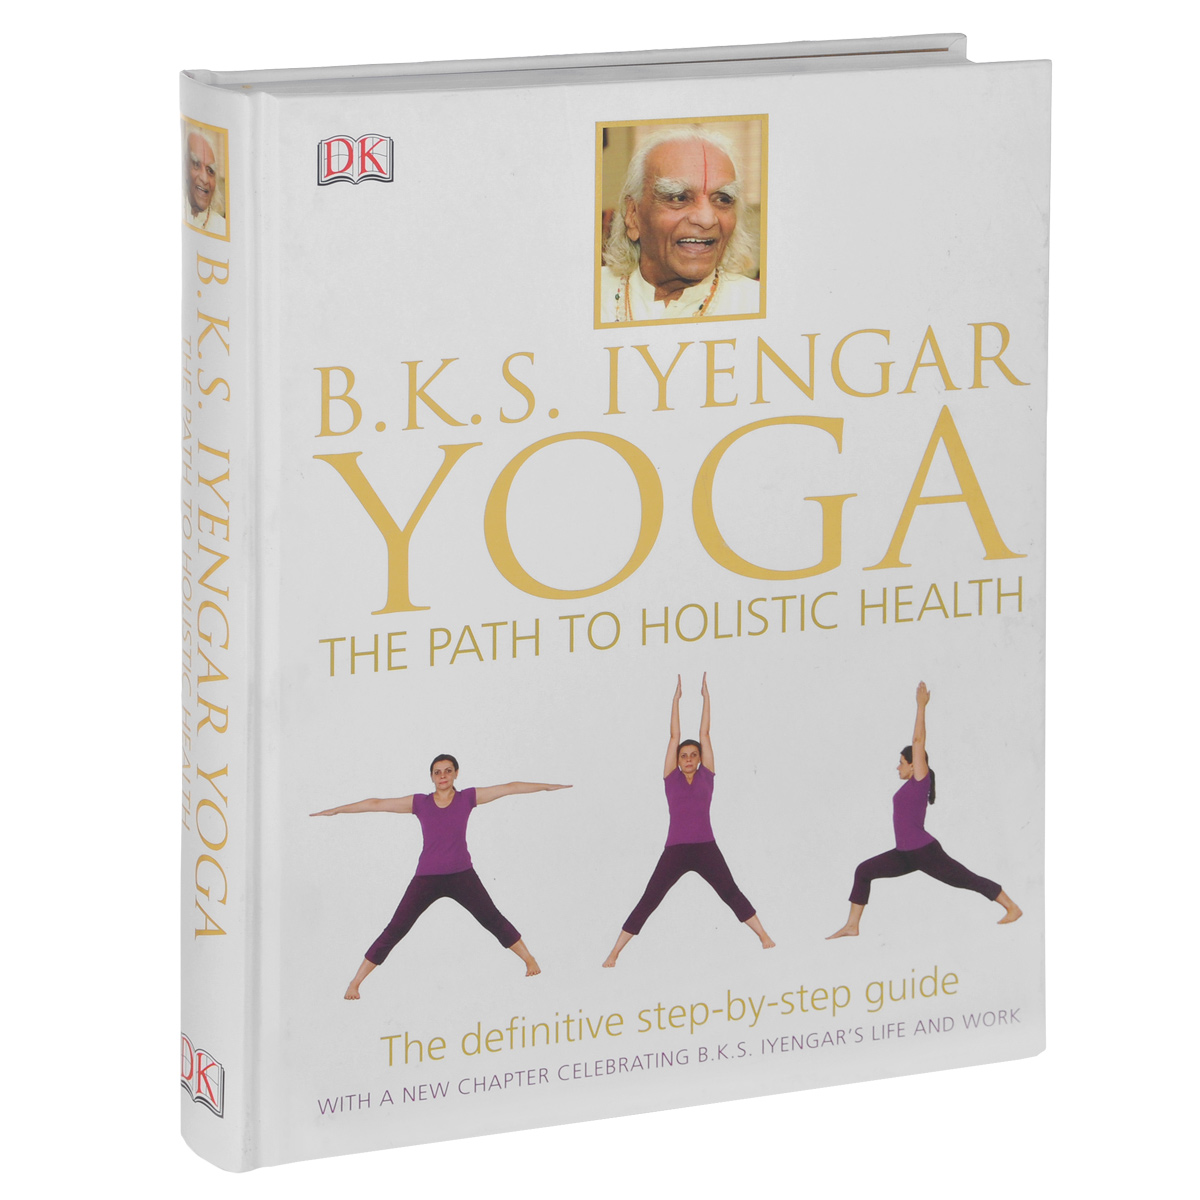 B.K.S. Iyengar Yoga: The Path to Holistic Health клетка imac elisa 50х30х58см синий 06655